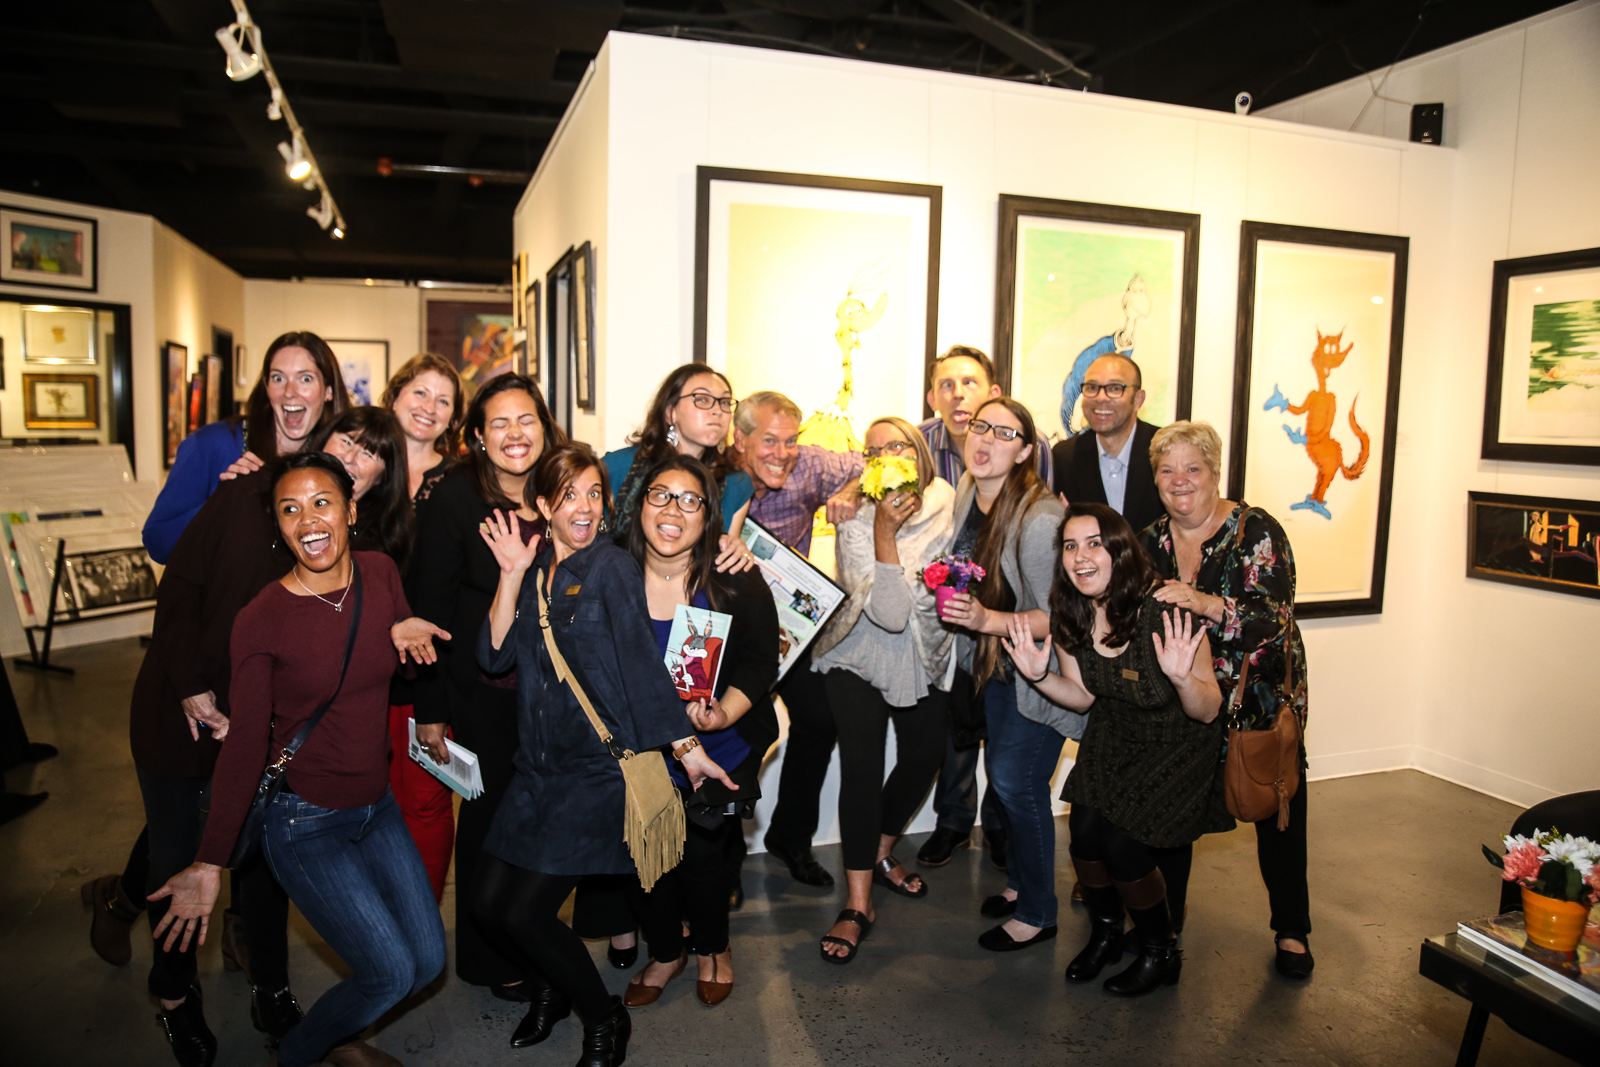 Say Cheese! Chuck Jones Center for Creativity and Words Alive staff and volunteers celebrate the students' work at the exhibit.